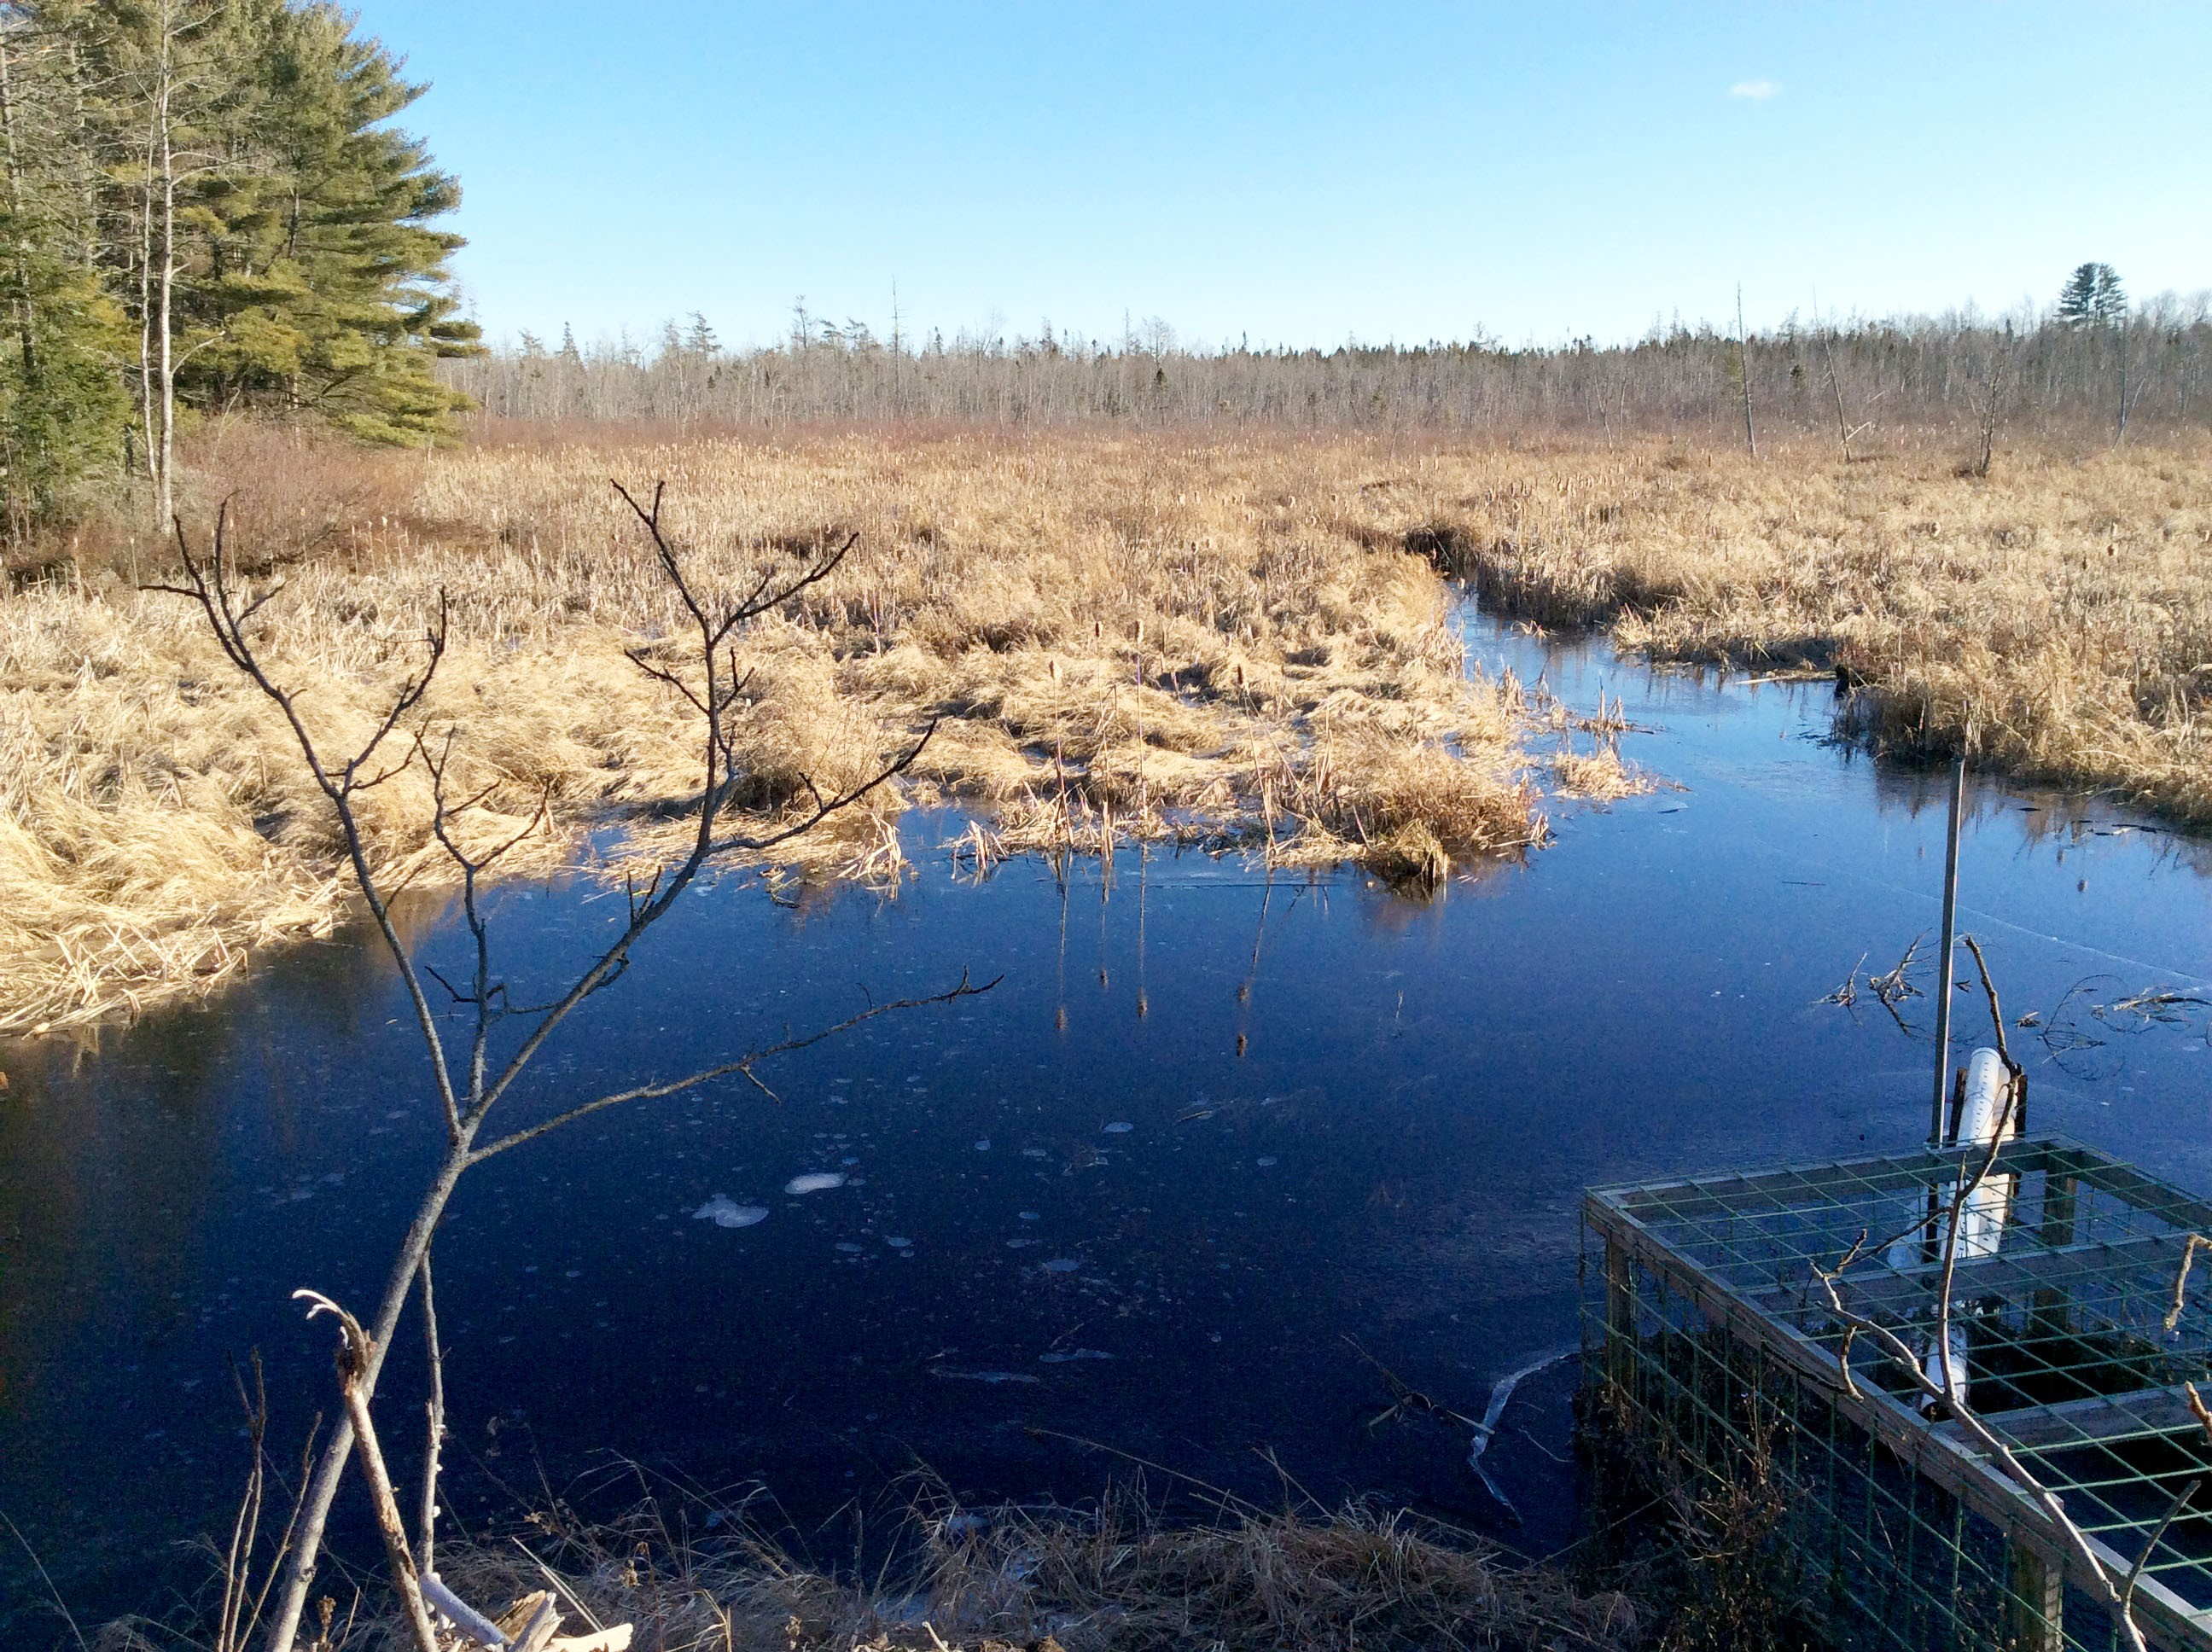 Orono landscapes provide a view of habitat for beaver, heron and pond life.